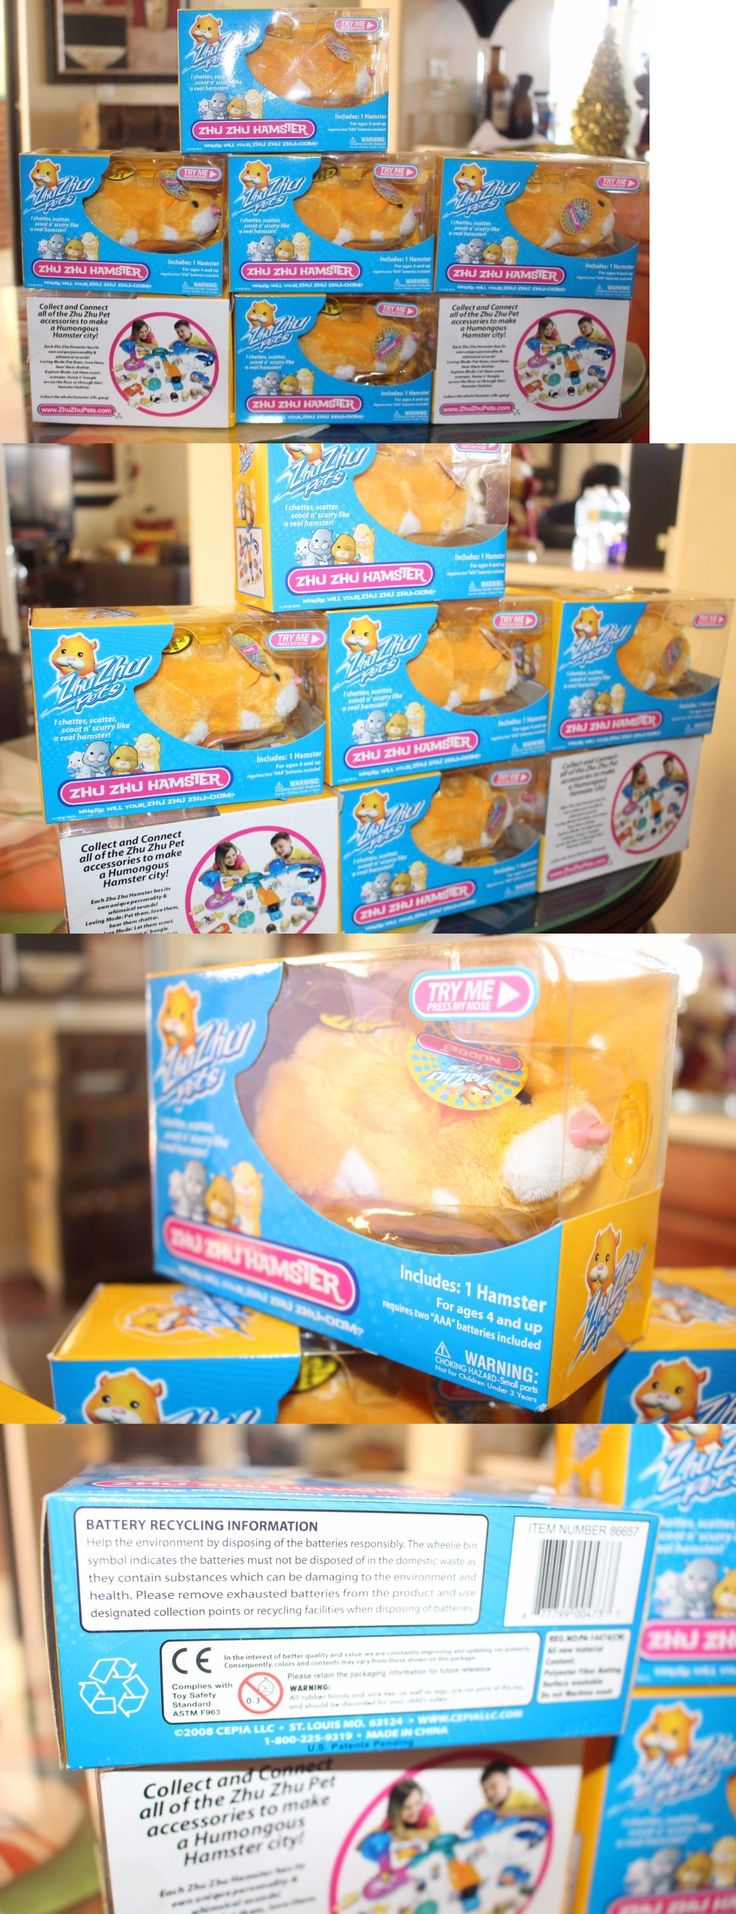 Zhu Zhu Pets 171529: New Lot Of 7 Zhu Zhu Hamster Pet Nugget (Rare Gold And White) 2008 -> BUY IT NOW ONLY: $35 on eBay!